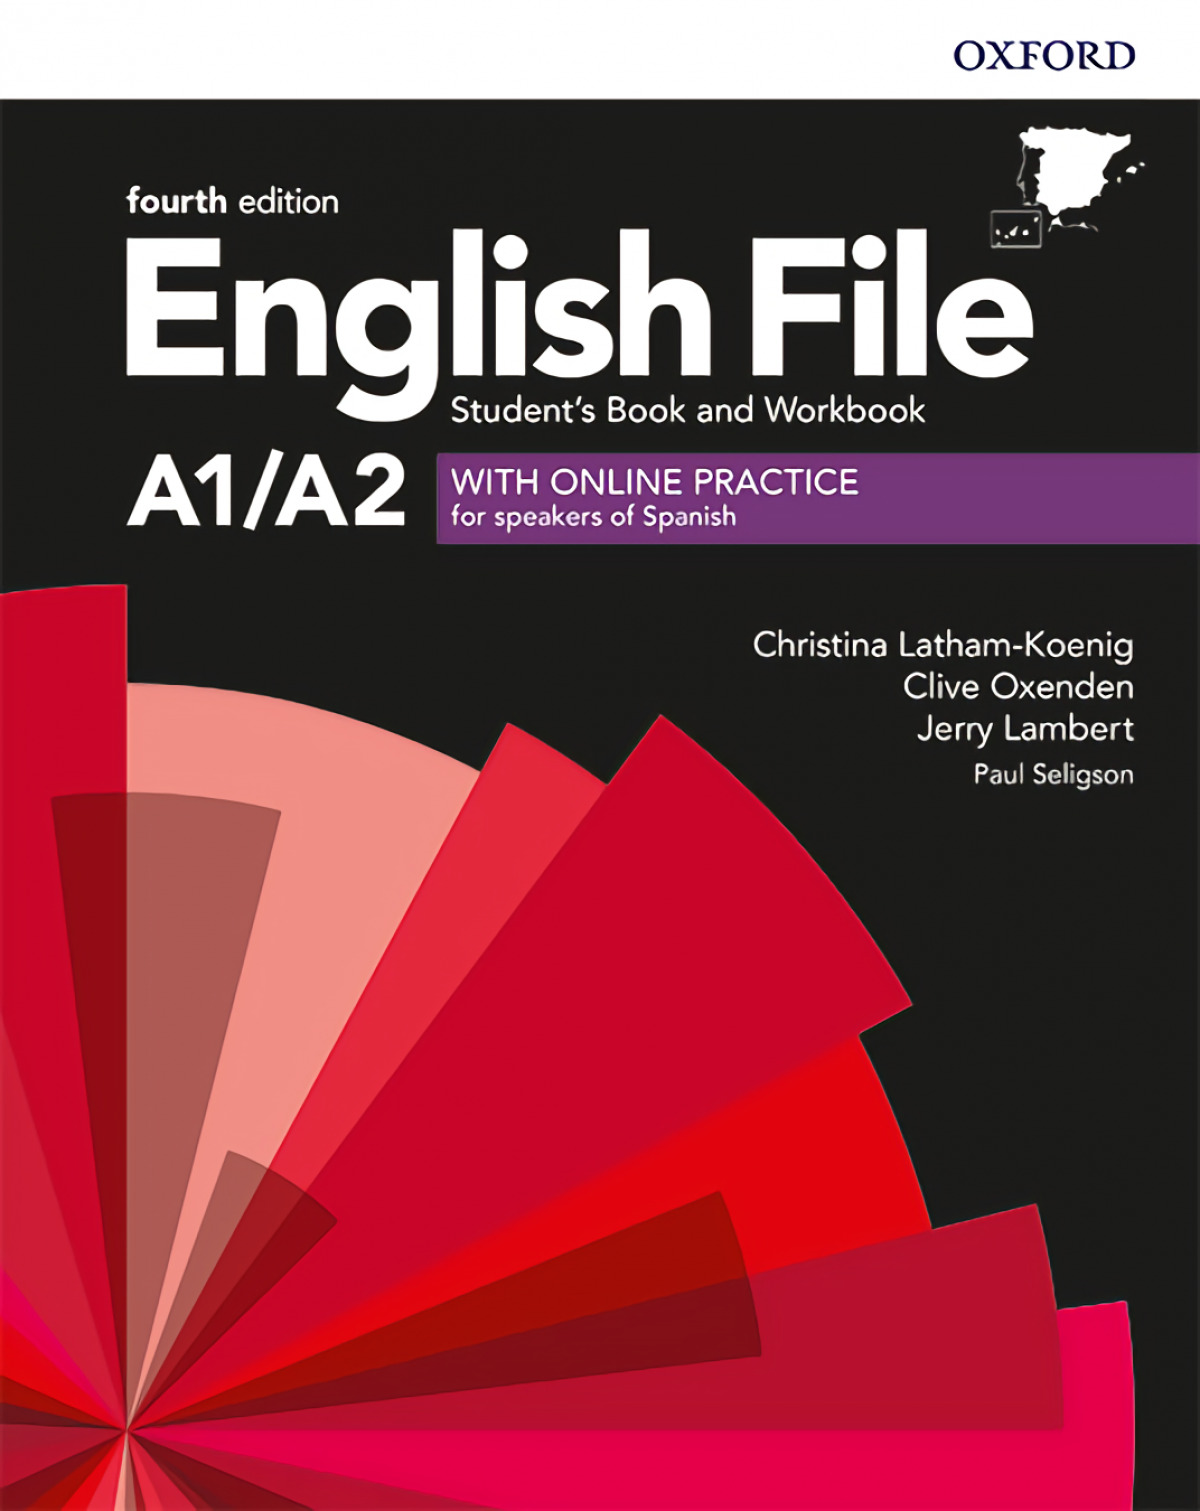 ENGLISH FILE A1 A2 ELEMENTARY STUDENT S WORKBOOK KEY WITH ONLINE PRACTICE FOURTH EDITION 97801940580